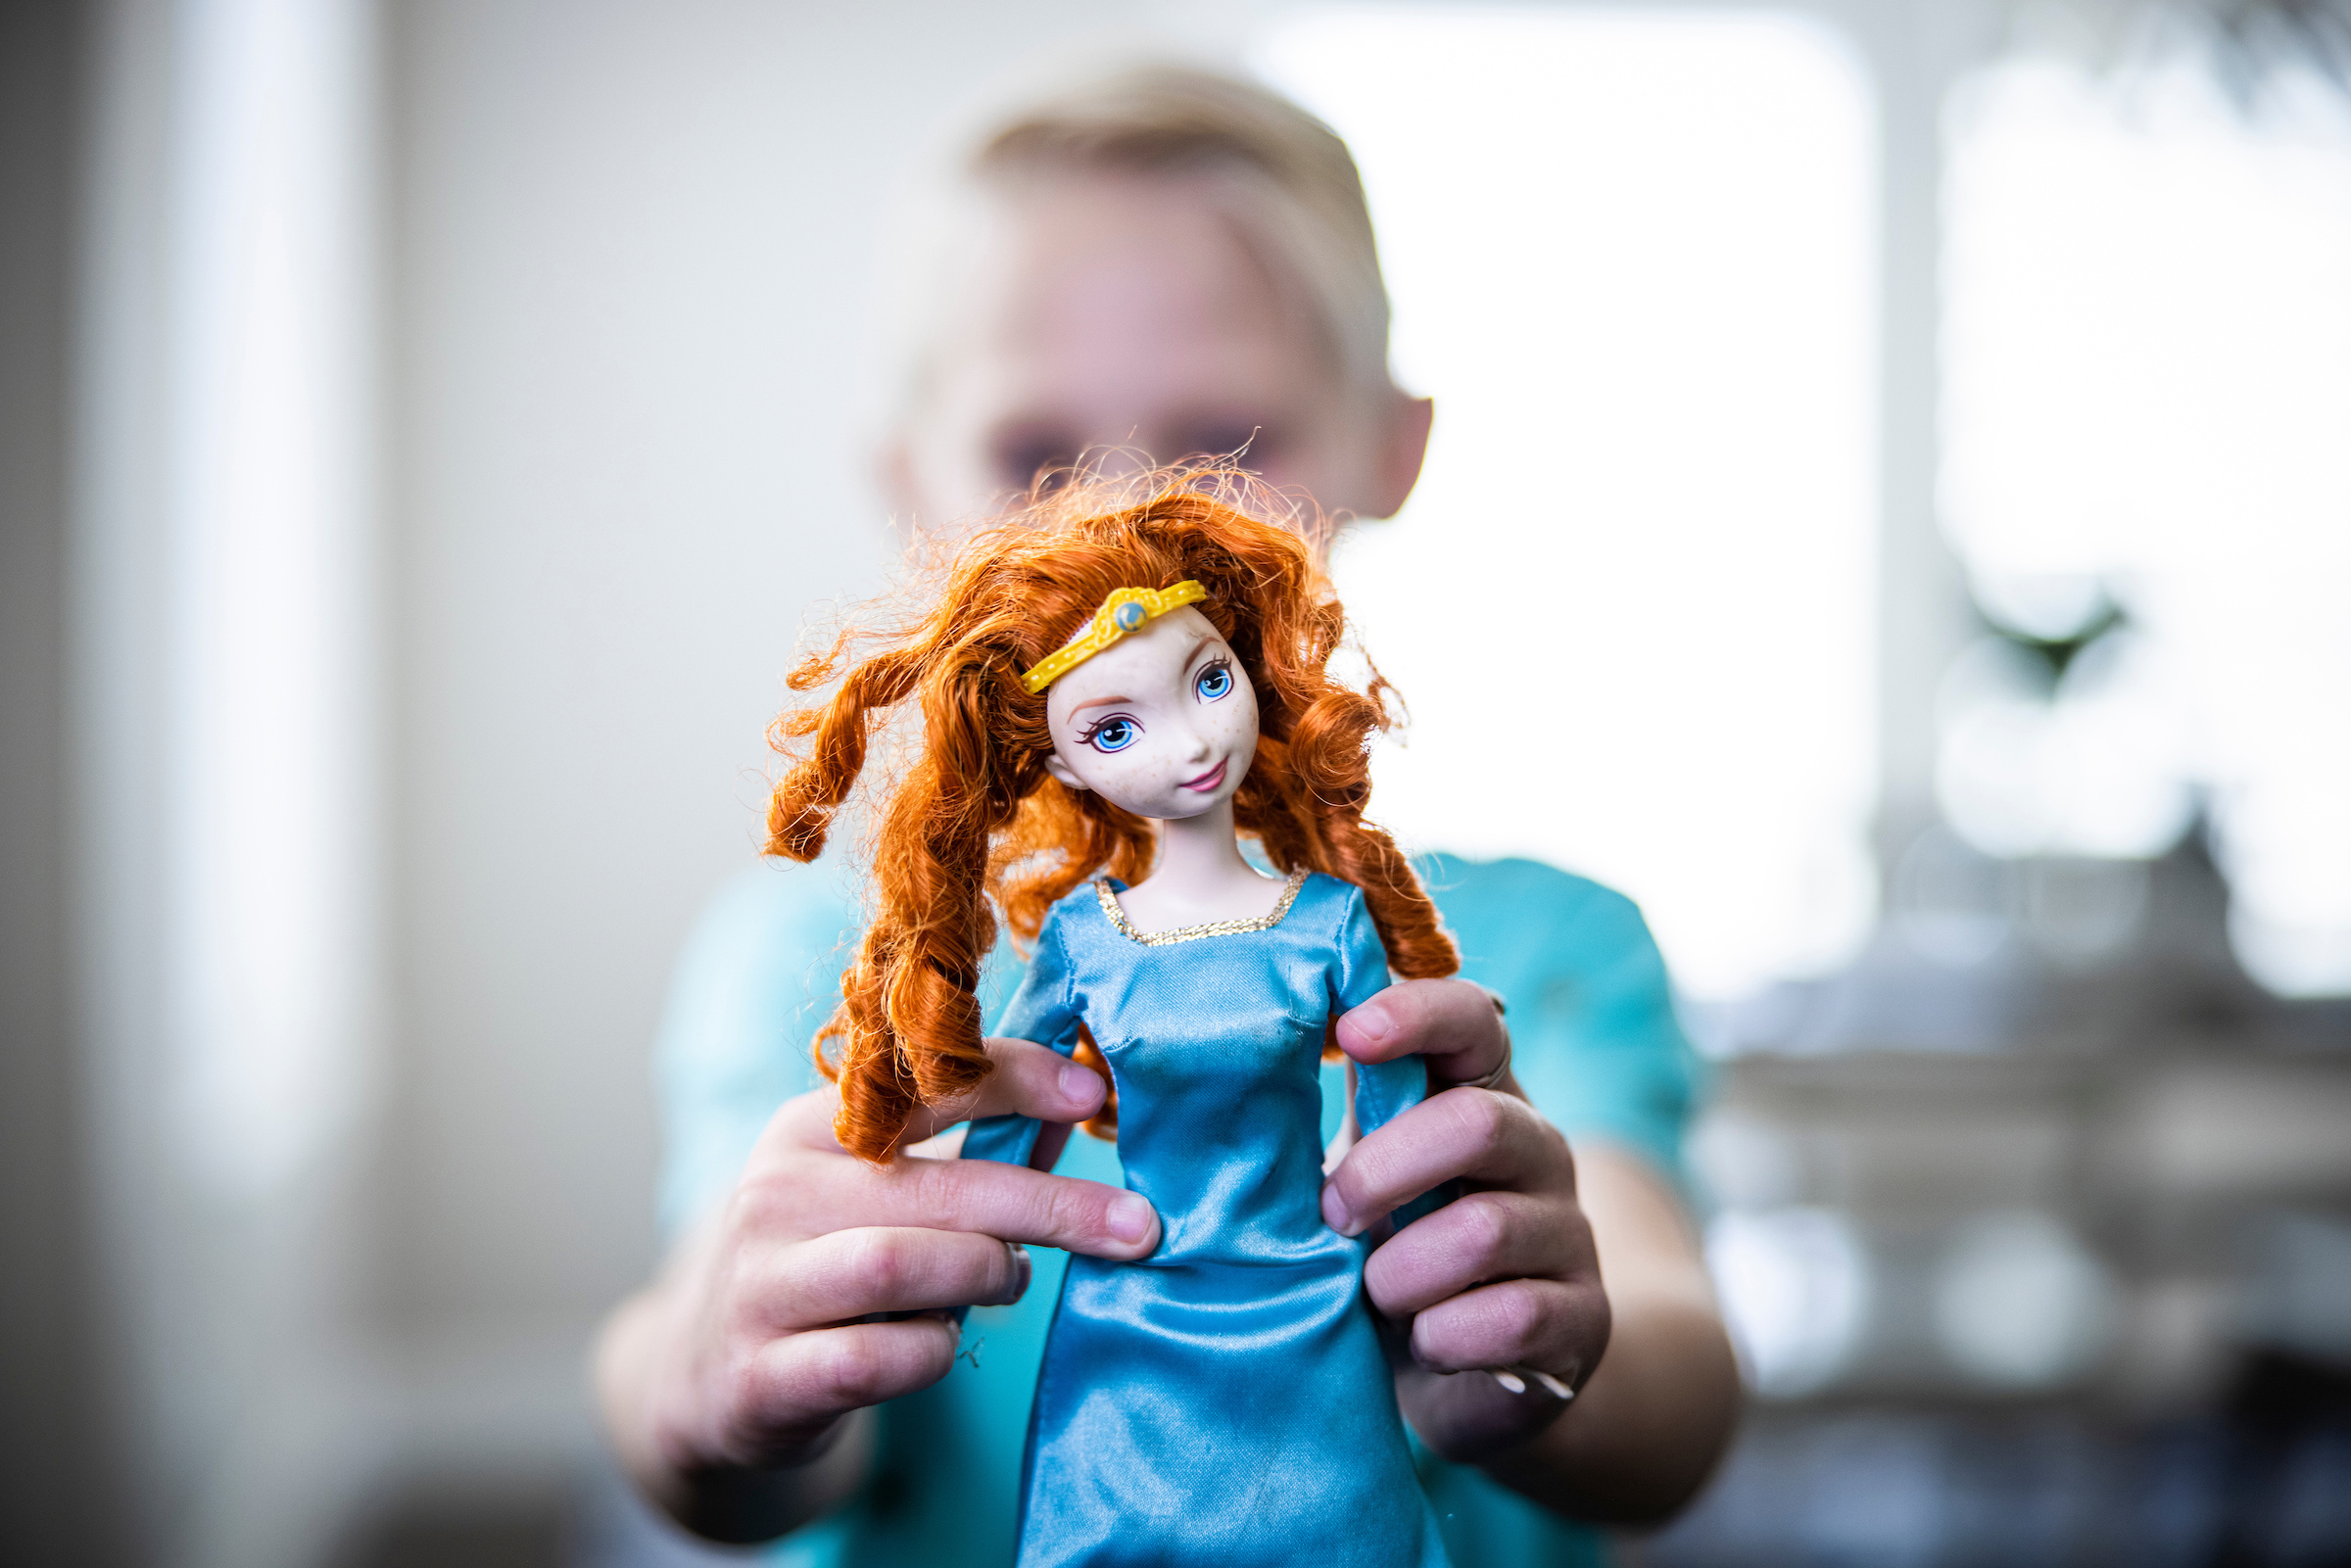 Research from BYU indicates that engagement with princess culture has a positive impact on child development over time.